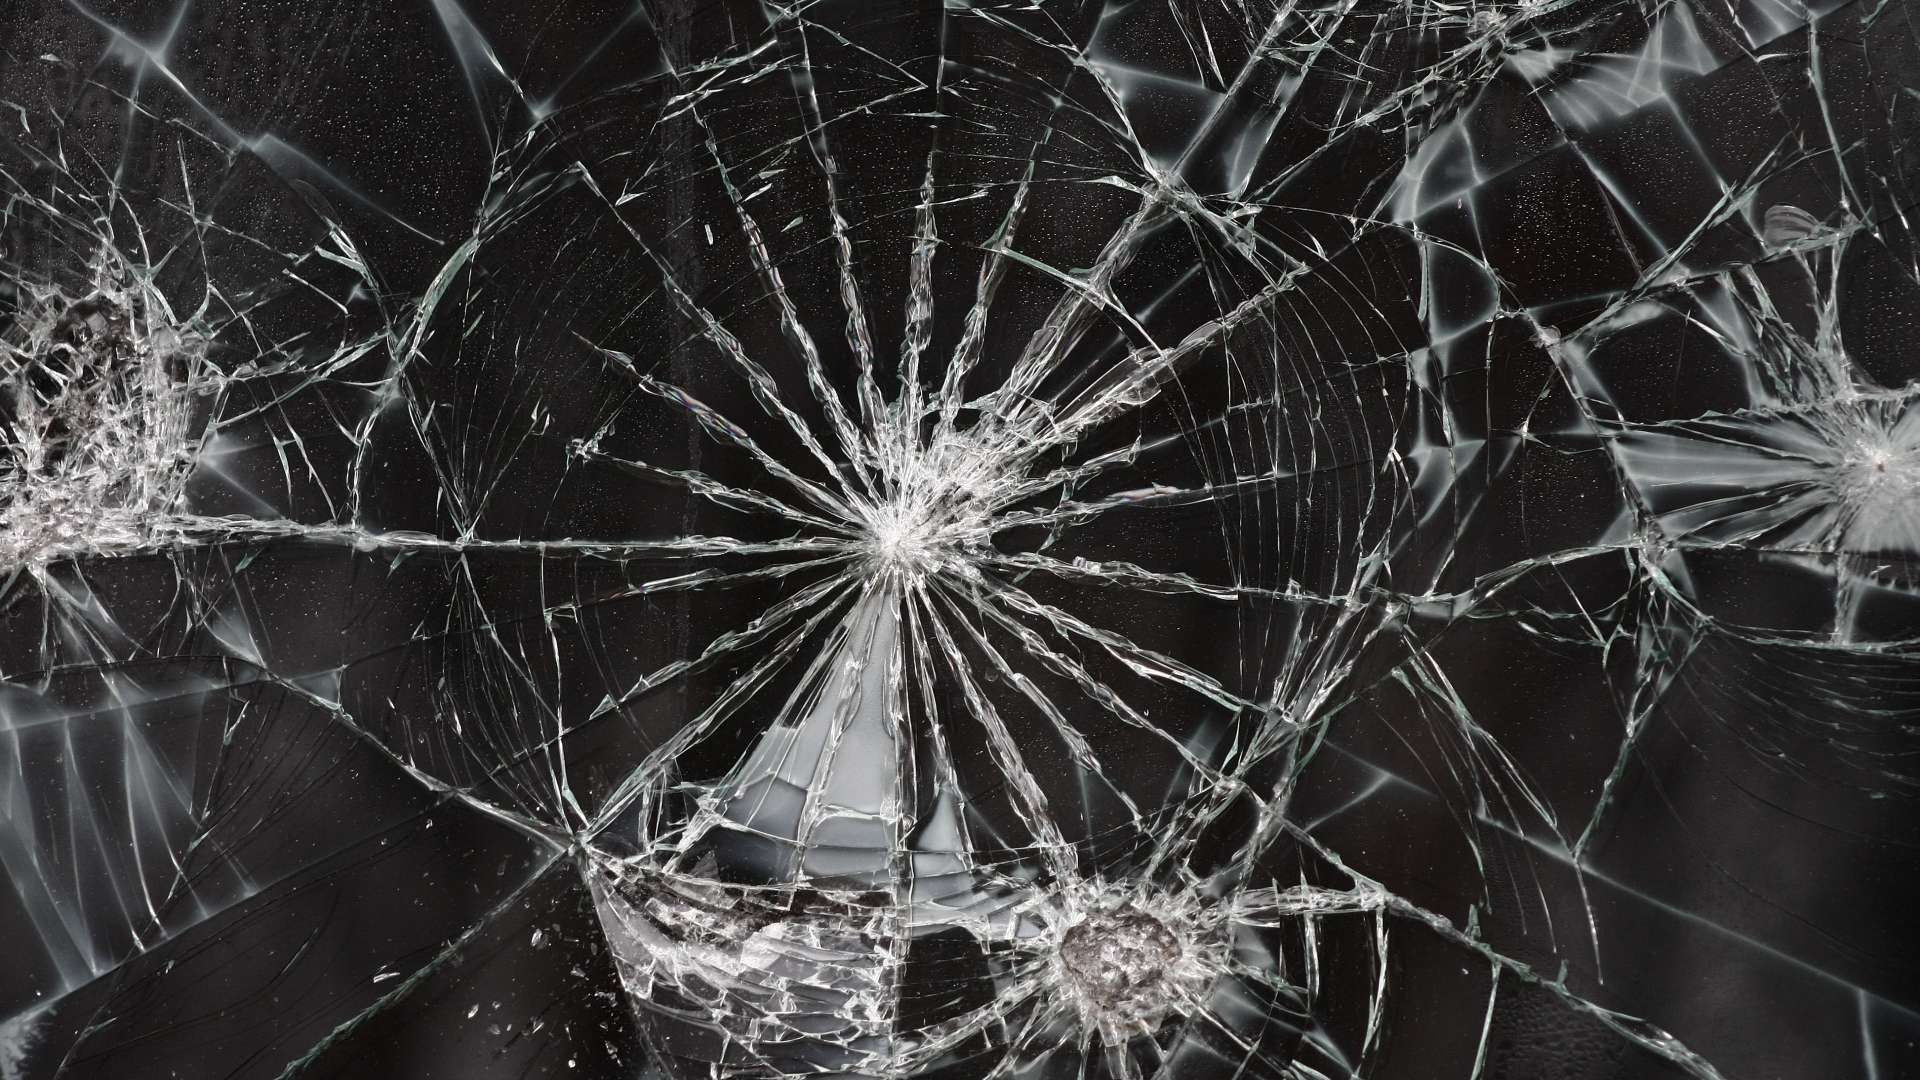 Wallpapers Of Cracked Phone Screen You Ca Use To Prank Someone